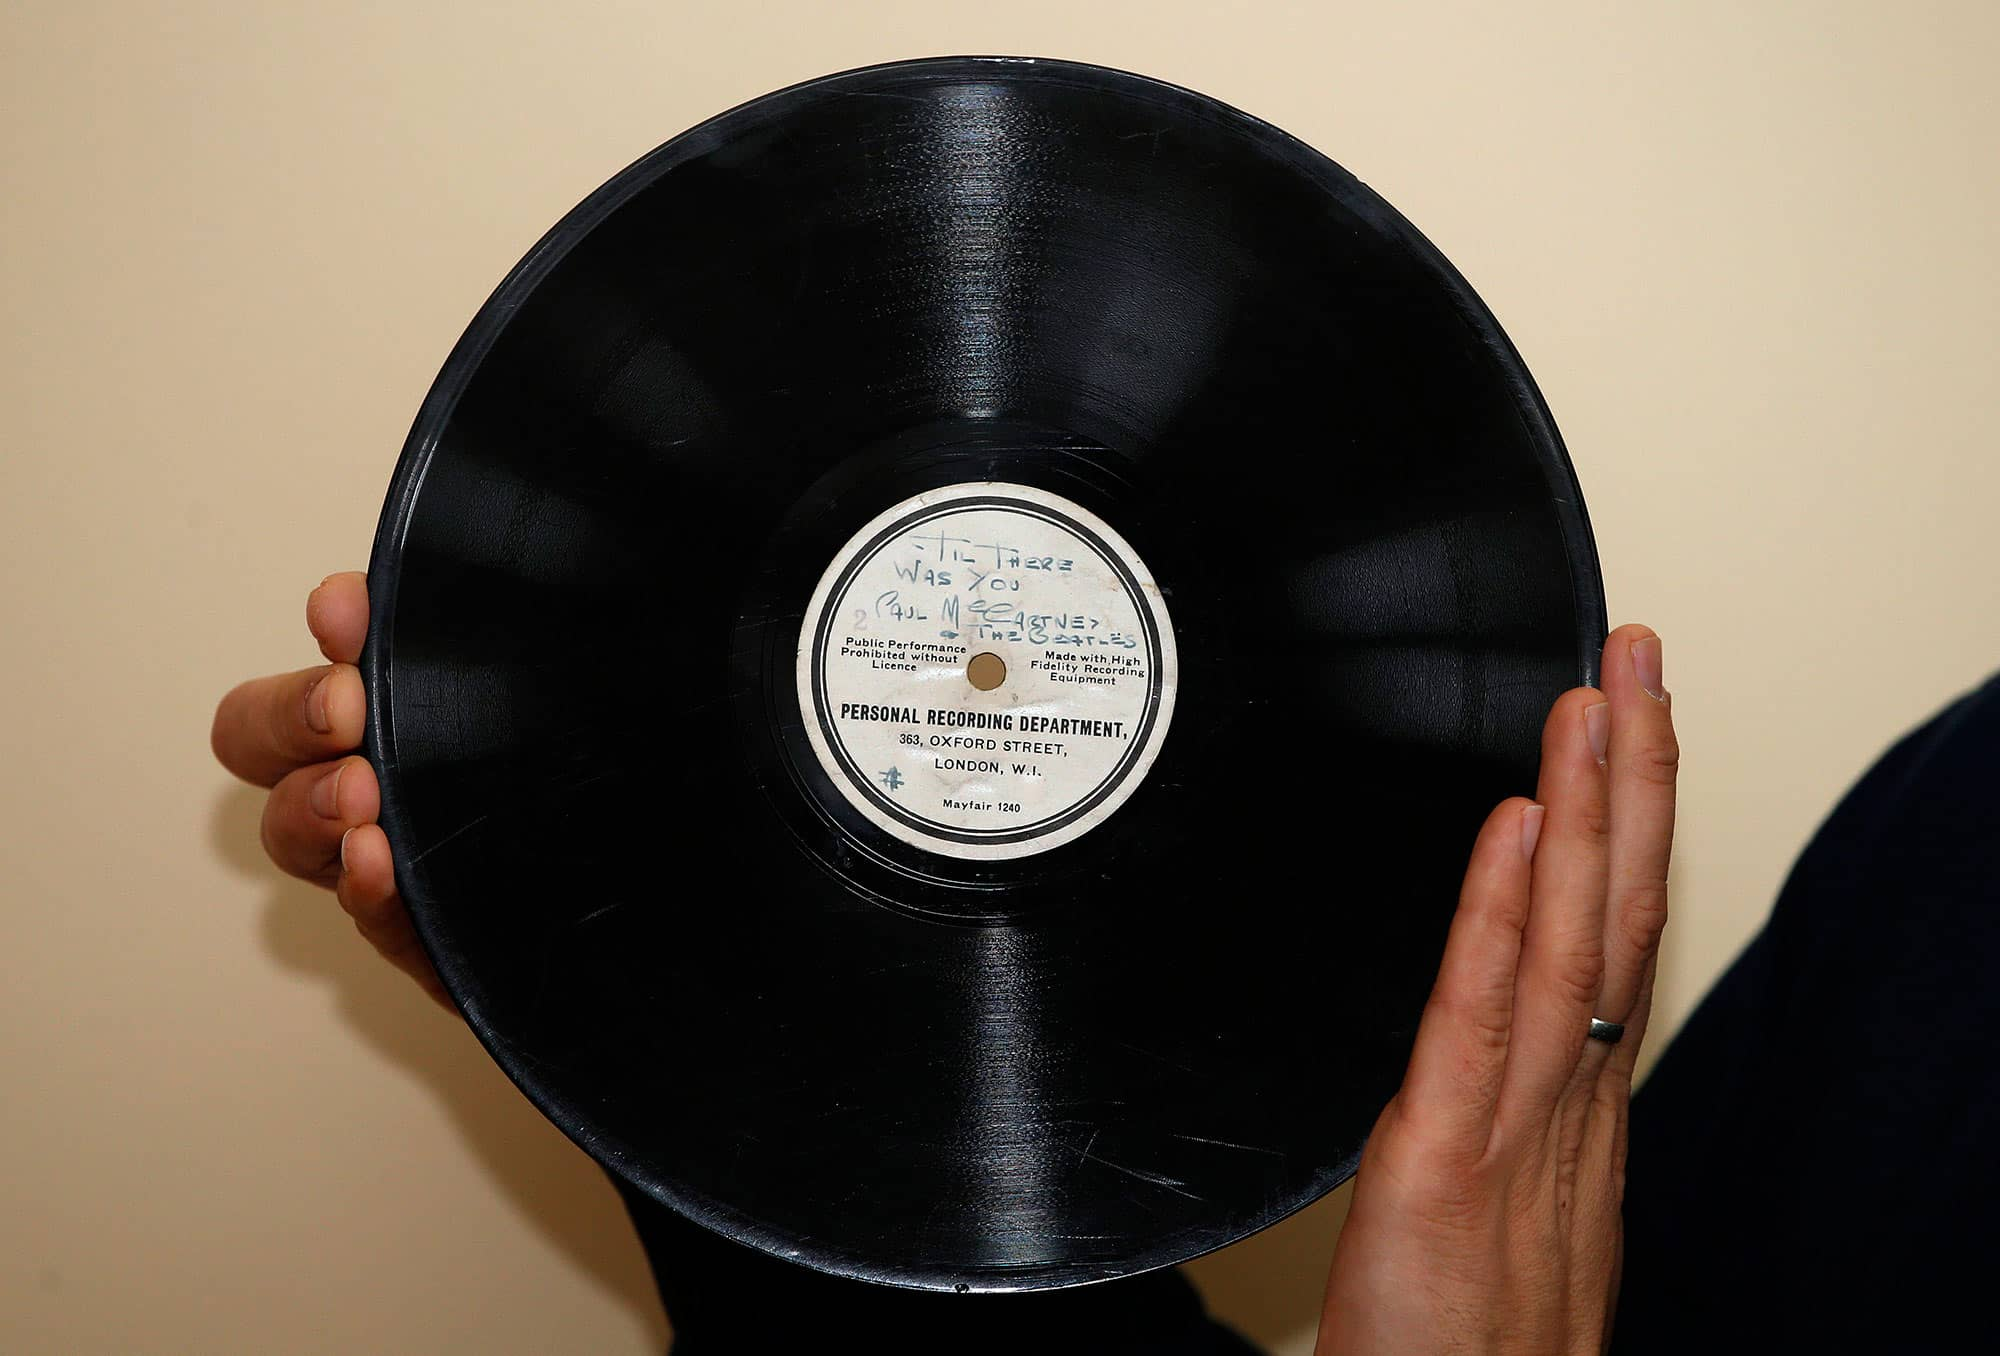 http://i0.wp.com/www.beatlesbible.com/wp/media/till-there-was-you-decca-hmv-acetate_01.jpg.jpg